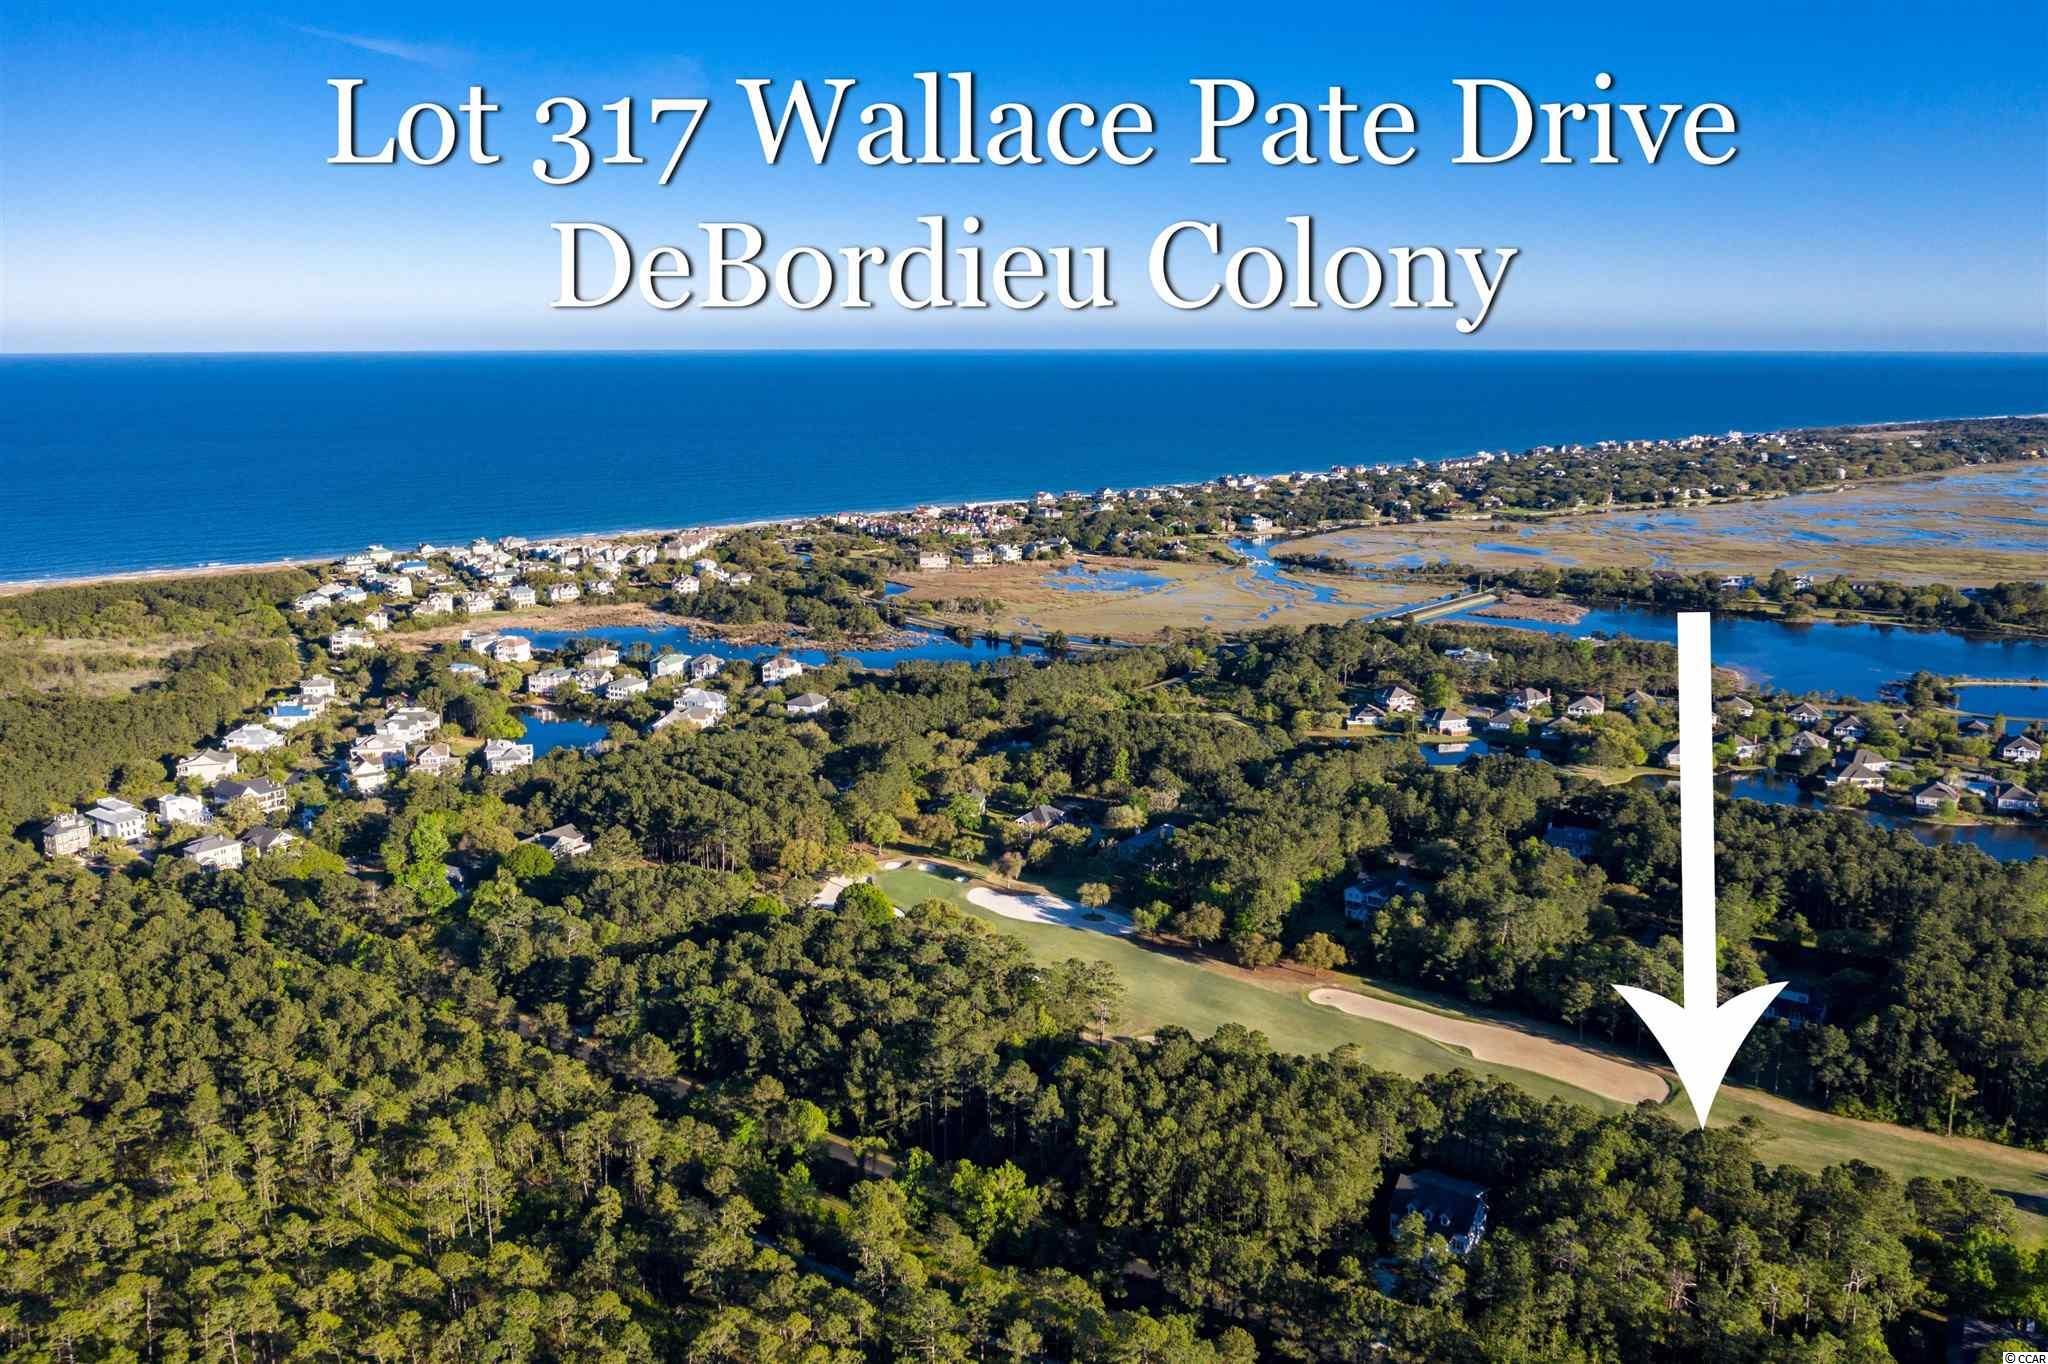 DeBordieu Colony - Take your Golf Cart to the beach! The high elevation and close proximity to the DeBordieu Beach Club make Lot 317 Wallace Pate the perfect lot for you to build your DeBordieu Colony Home! Right around two corners from beach access at the ocean front DeBordieu Beach Club, Lot 317 Wallace Pate offers a wide, golf course fairway view. Because it's not on a tee or green, ARB approval of a pool is likely! Dimensions of this beautifully wooded lot are 100 x 214 x 100 x 210. DeBordieu Colony is an oceanfront community located just south of Pawleys Island, South Carolina featuring private golf and tennis, saltwater creek access to the ocean, a manned security gate, and luxury homes and villas surrounded by thousands of acres of wildlife and nature preserves. There's never been a better time to consider a purchase at DeBordieu Colony. Come see for yourself!